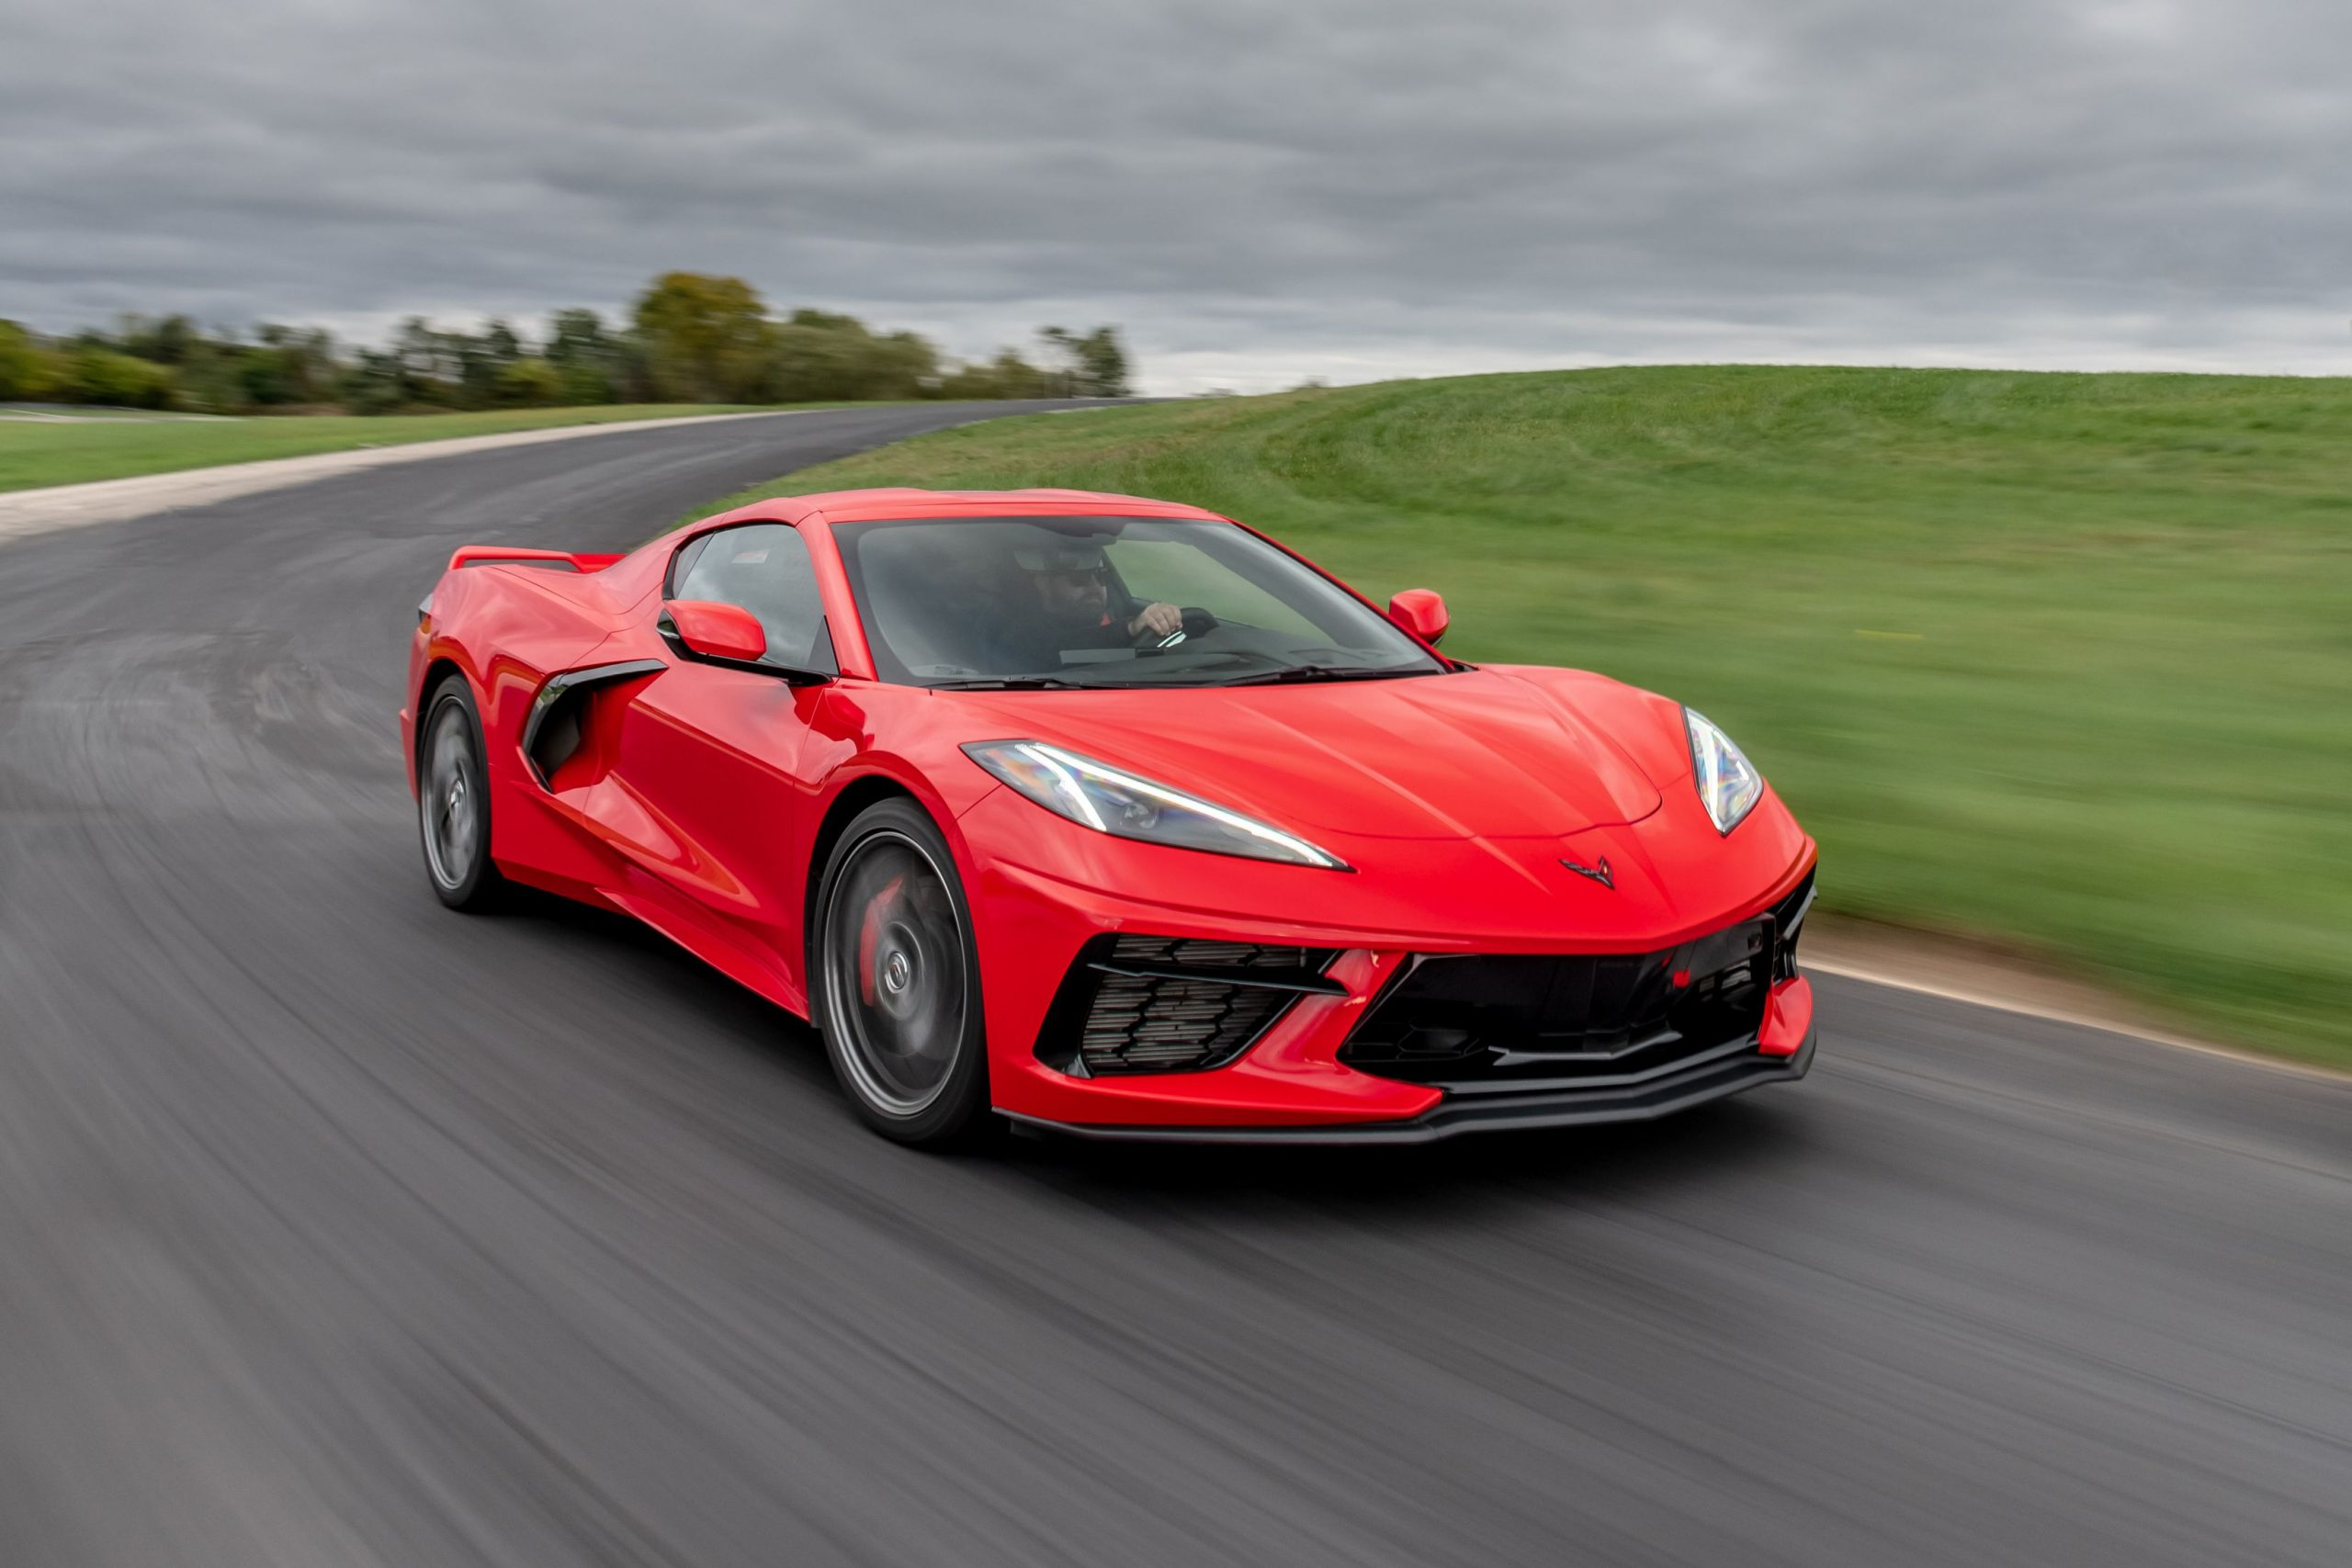 2020 Chevrolet Corvette Is More Than The Best Corvette Ever 2021 Chevy Corvette Grand Sport Interior, Owners Manual, Review